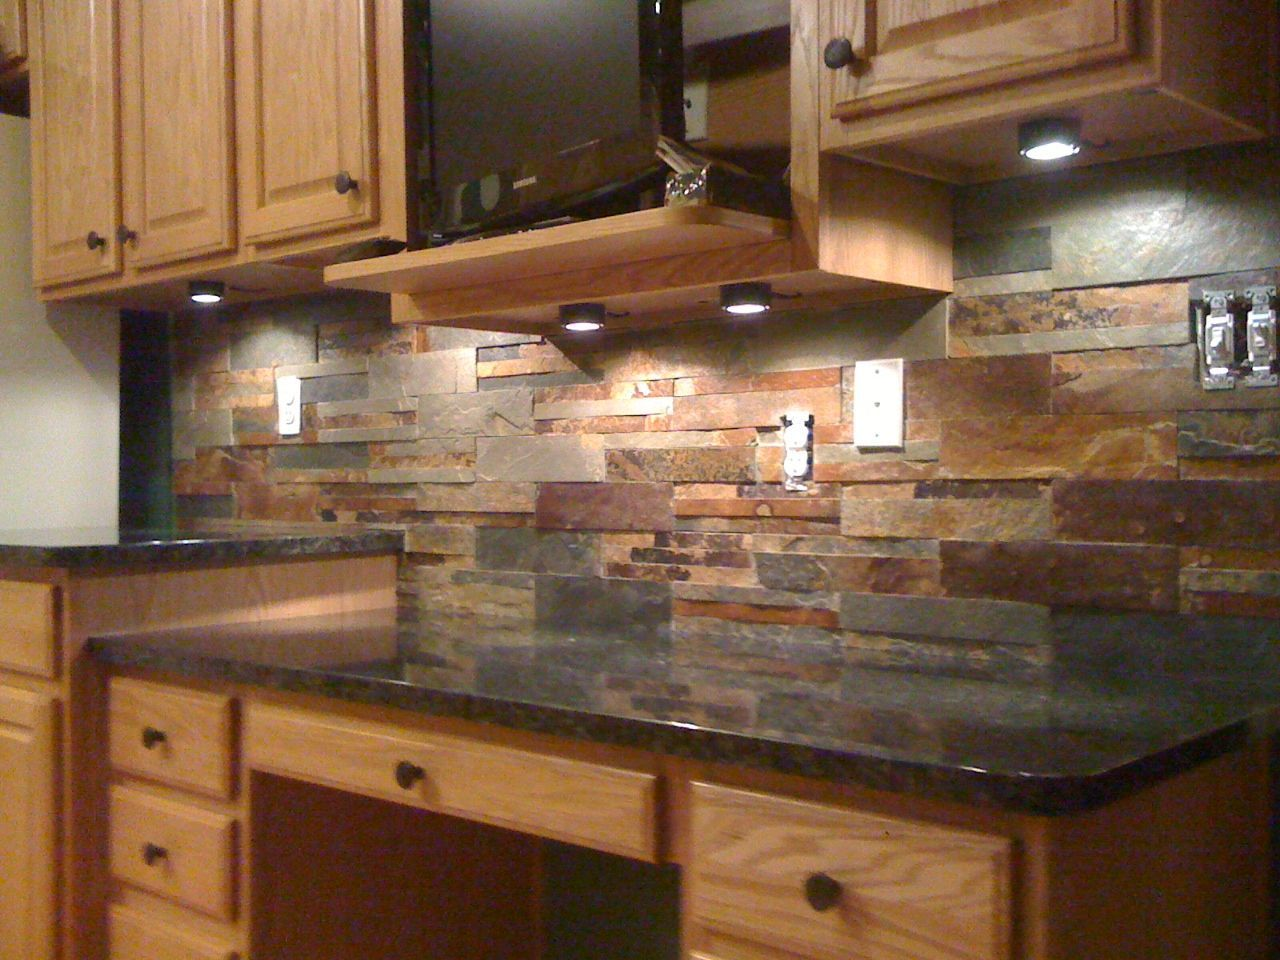 Uncategorized Slate Tile Kitchen Backsplash best 25 slate backsplash ideas on pinterest stone rock and country kitchen